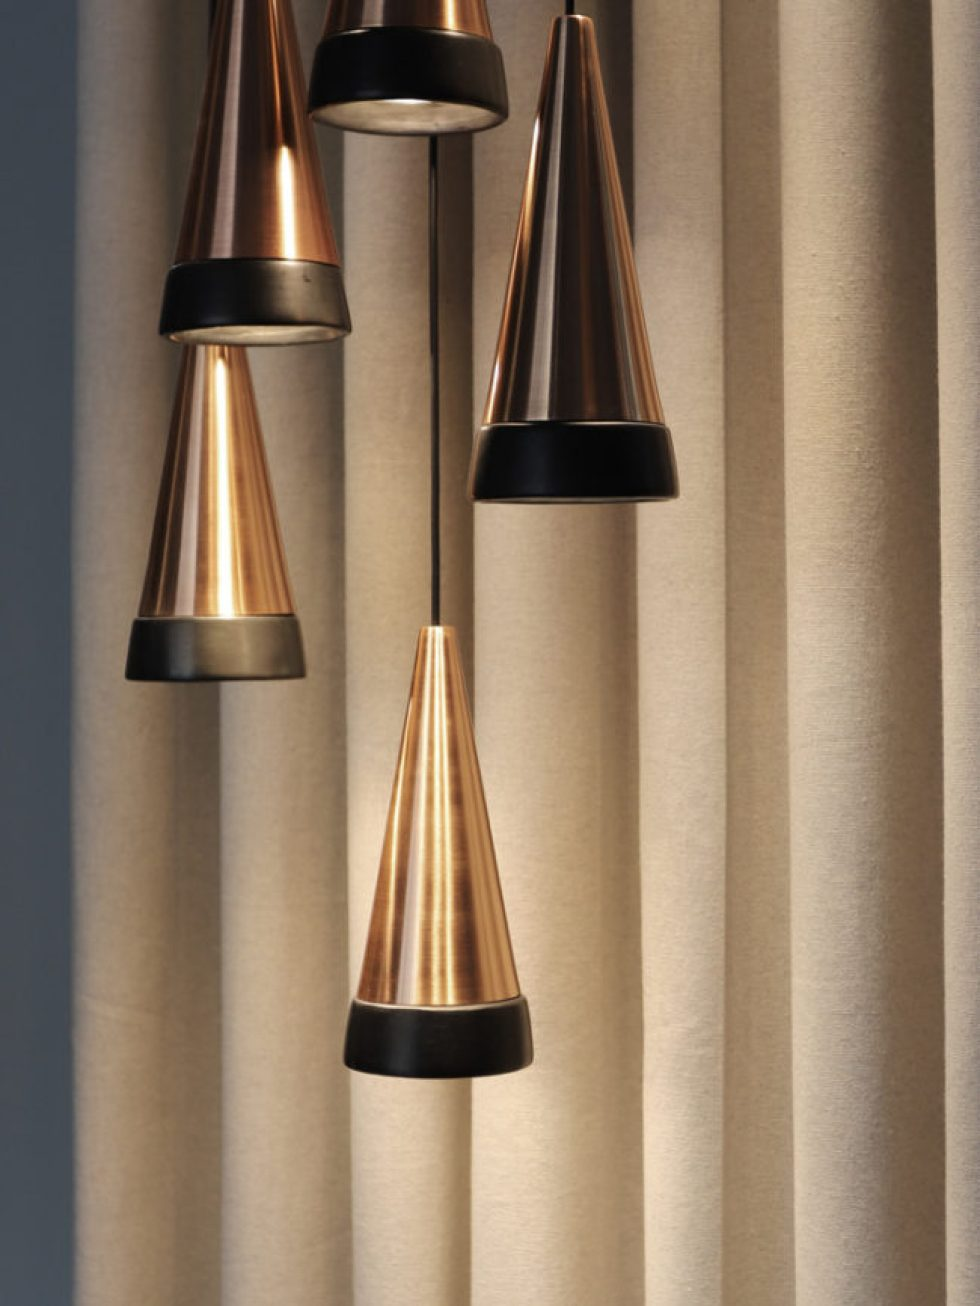 An elegant lamp by definition